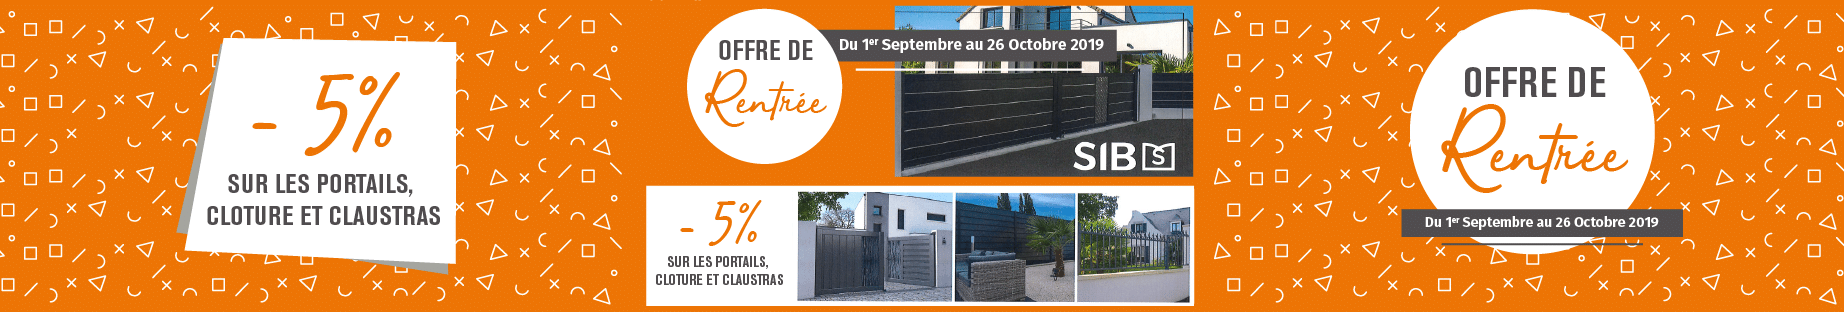 offre rentree-site